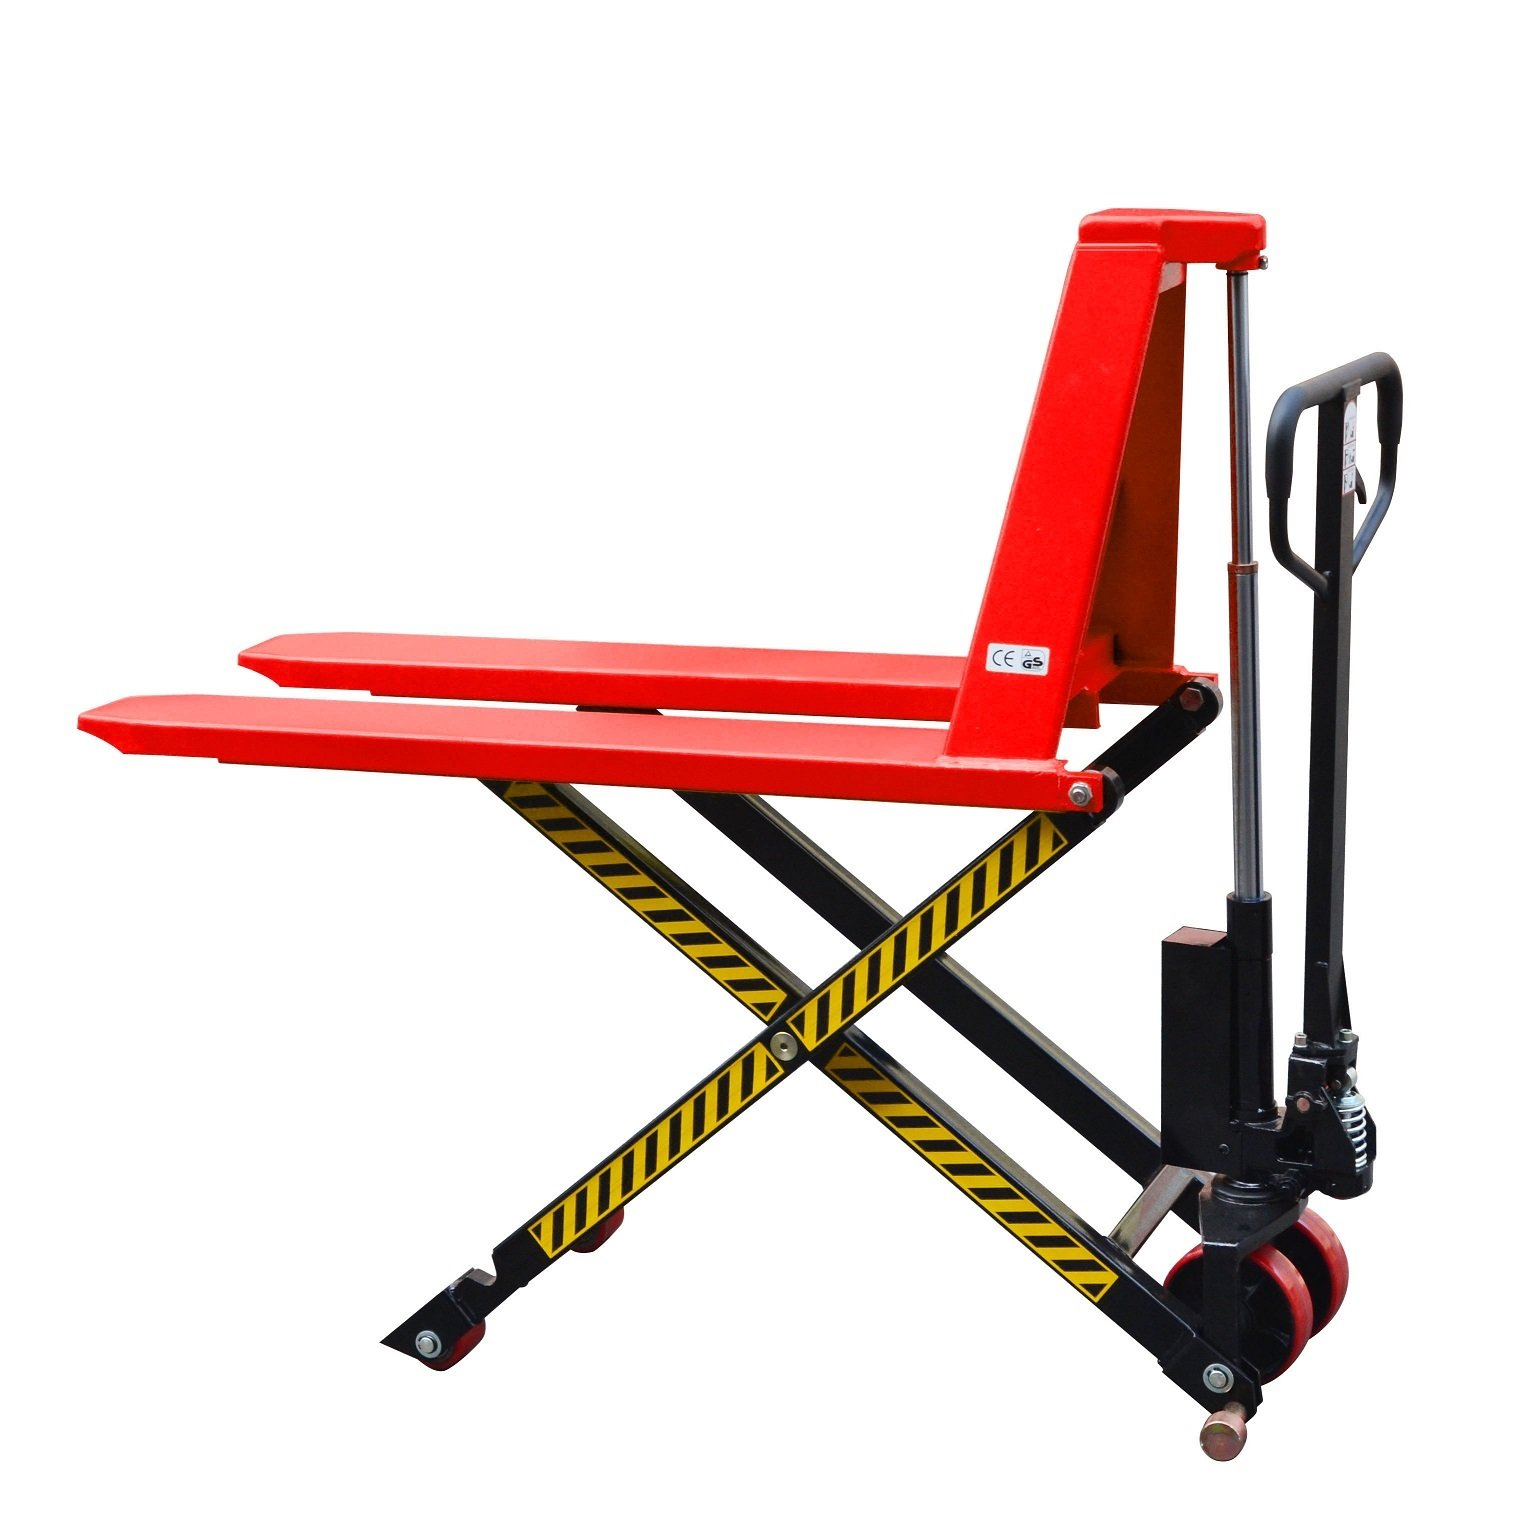 Giant Move MD-H15L Steel Manual High Lift Scissor Truck, 3300 lbs Capacity, 45'' Length x 27'' Width Fork, Red